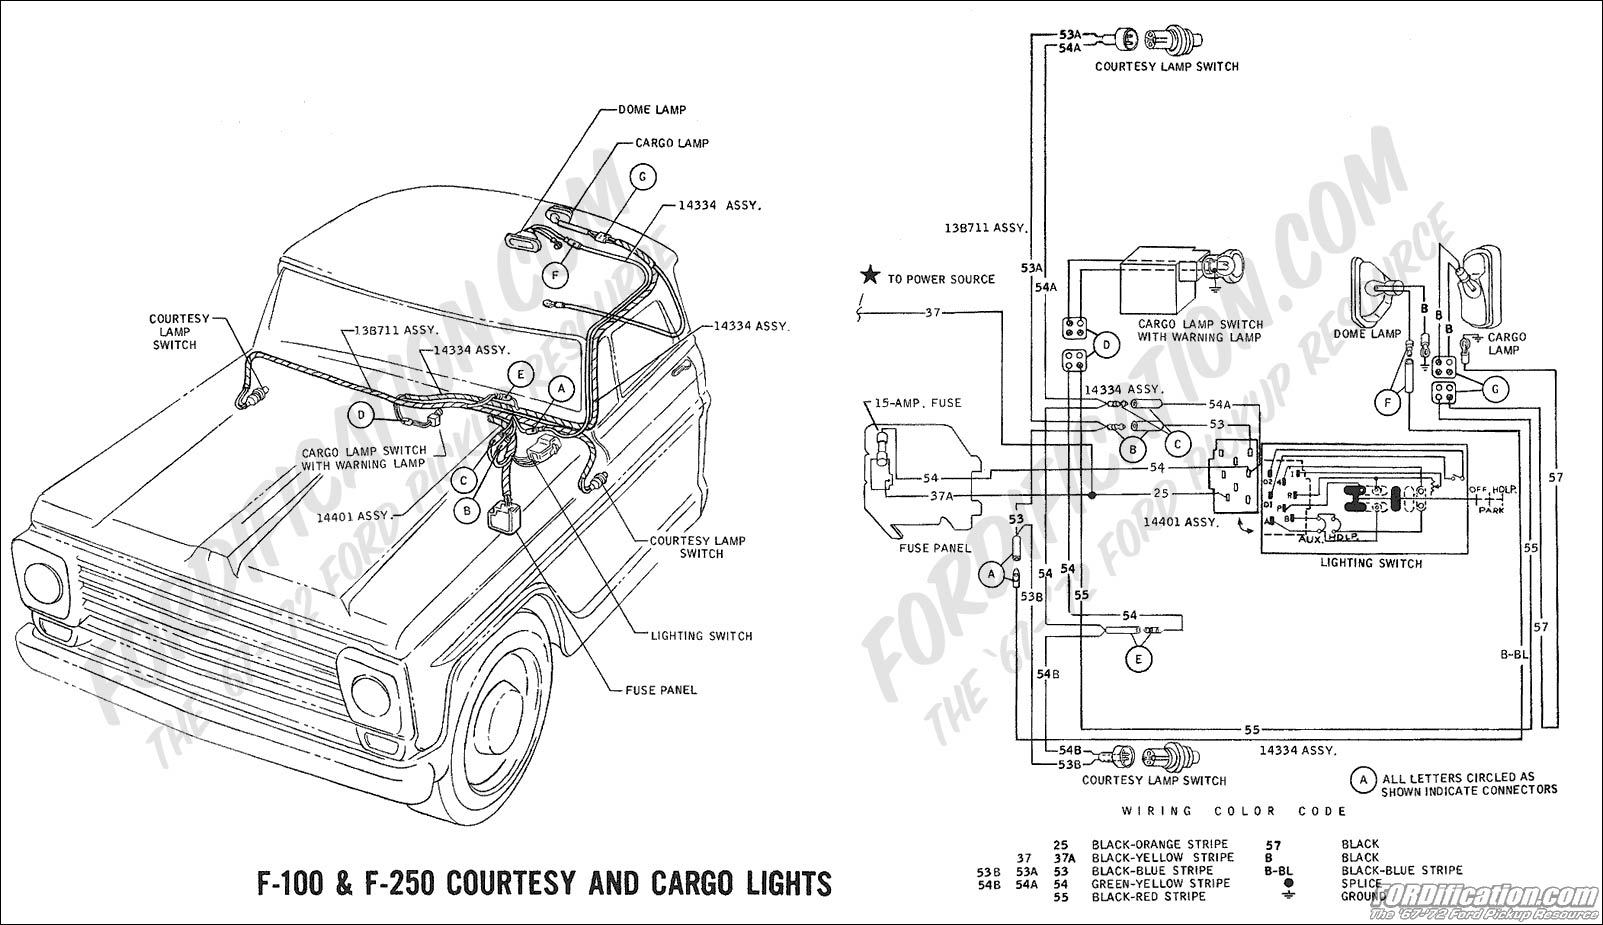 Ford F600 Wiring Diagram Home Diagrams Remote Starter Wire Truck Library Start